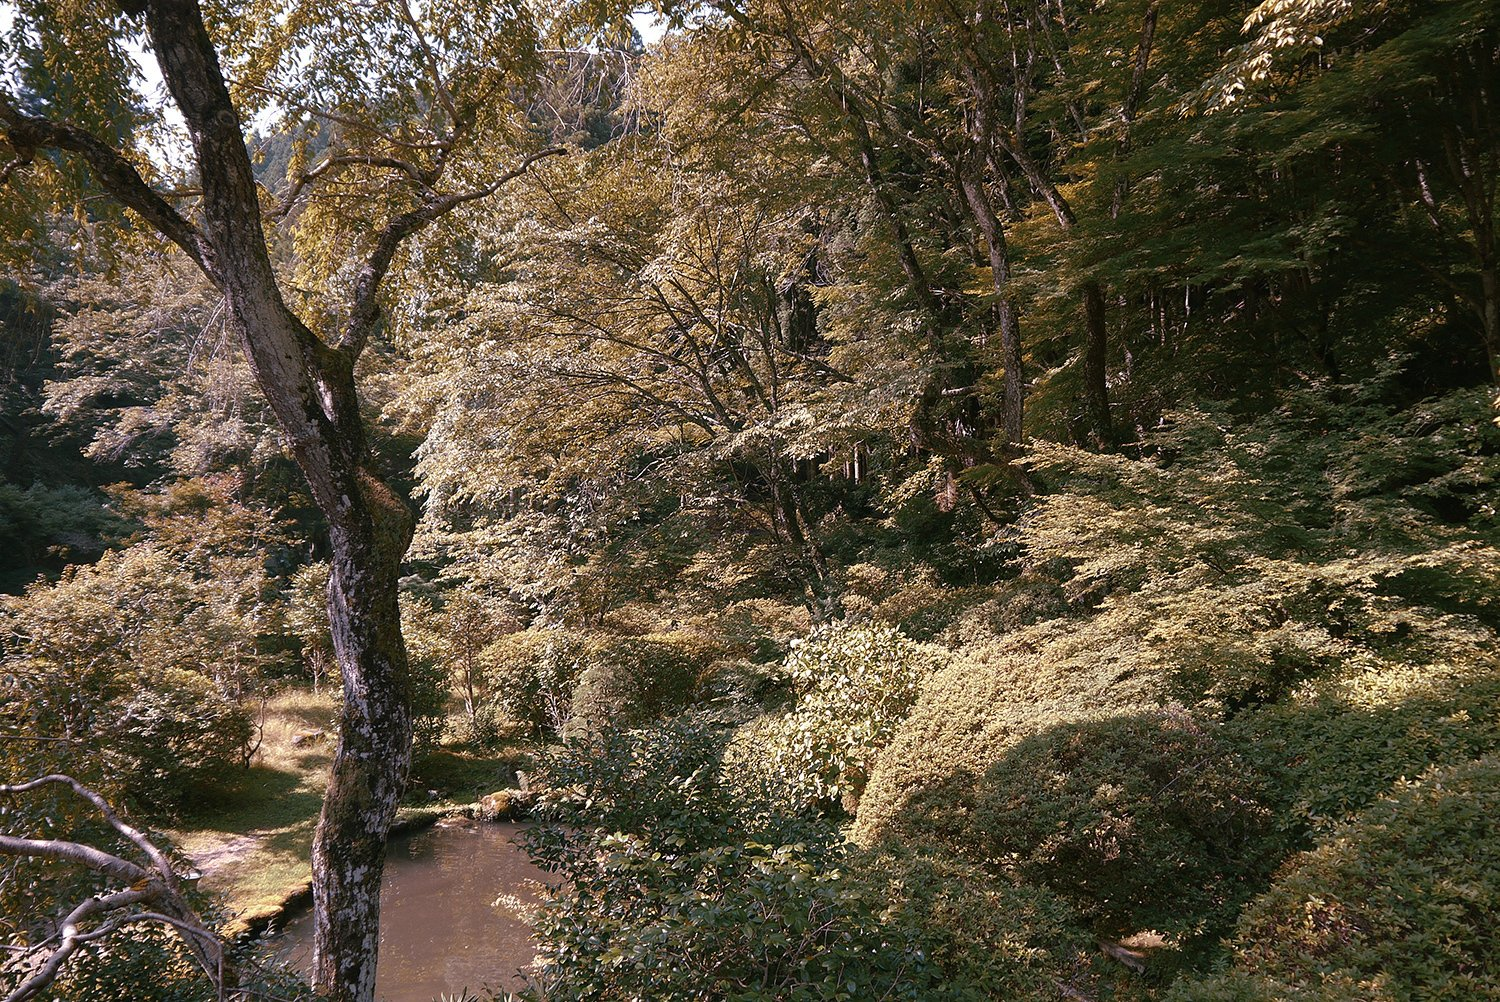 Outdoor and Trees A scenic view of the wild, natural landscape in Yoshino, a city in the Nara region of Central Japan.  Photo 12 of 12 in The Community-Run Cedar House by Airbnb and Go Hasegawa Welcomes Guests in Rural Japan from Yoshino Cedar House